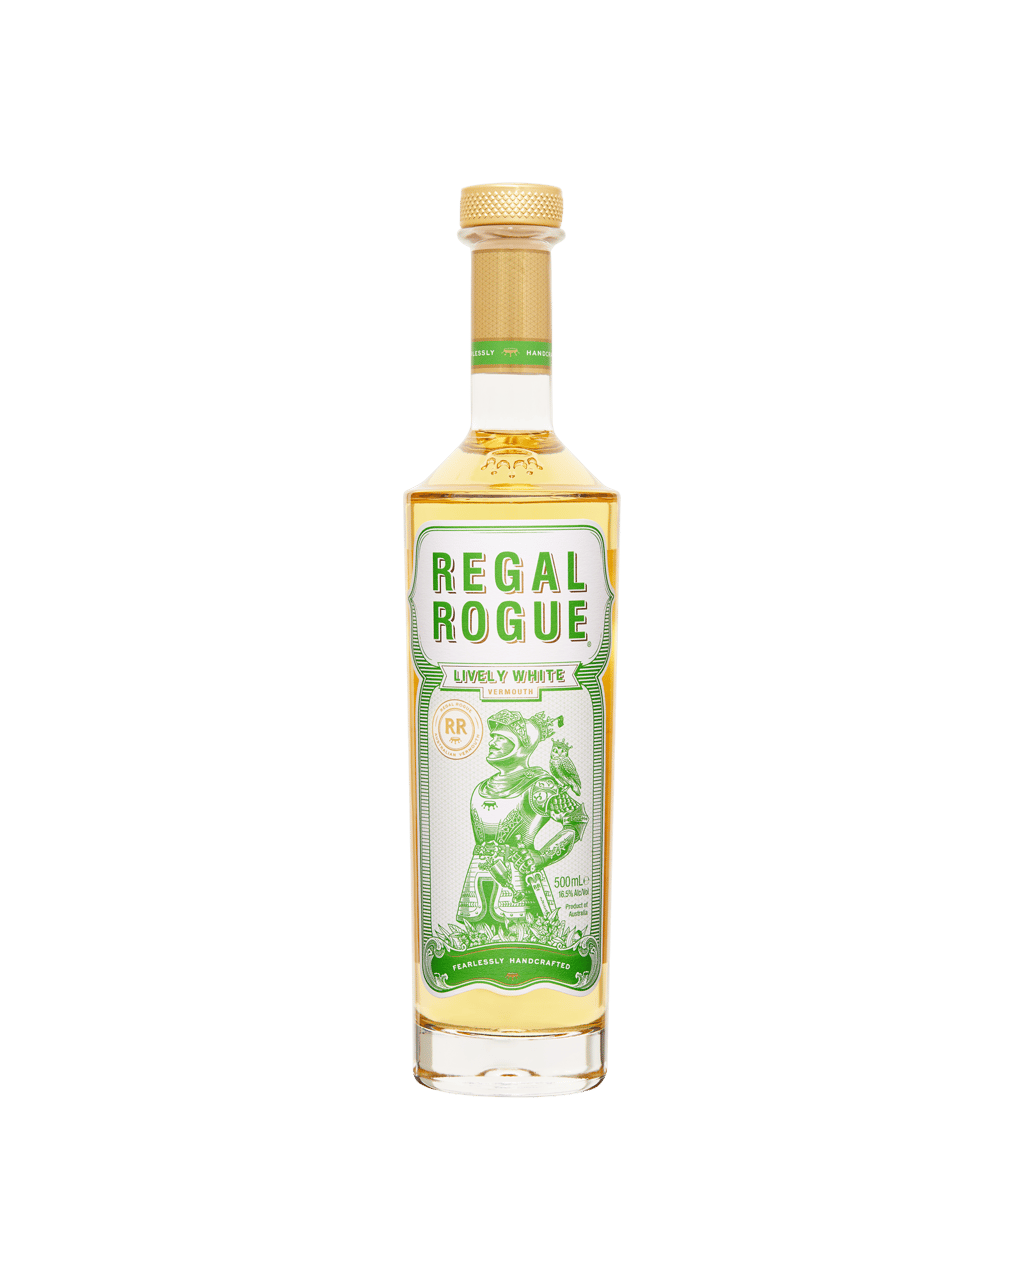 Buy Regal Rogue Regal Rogue Lively White Vermouth 500mL